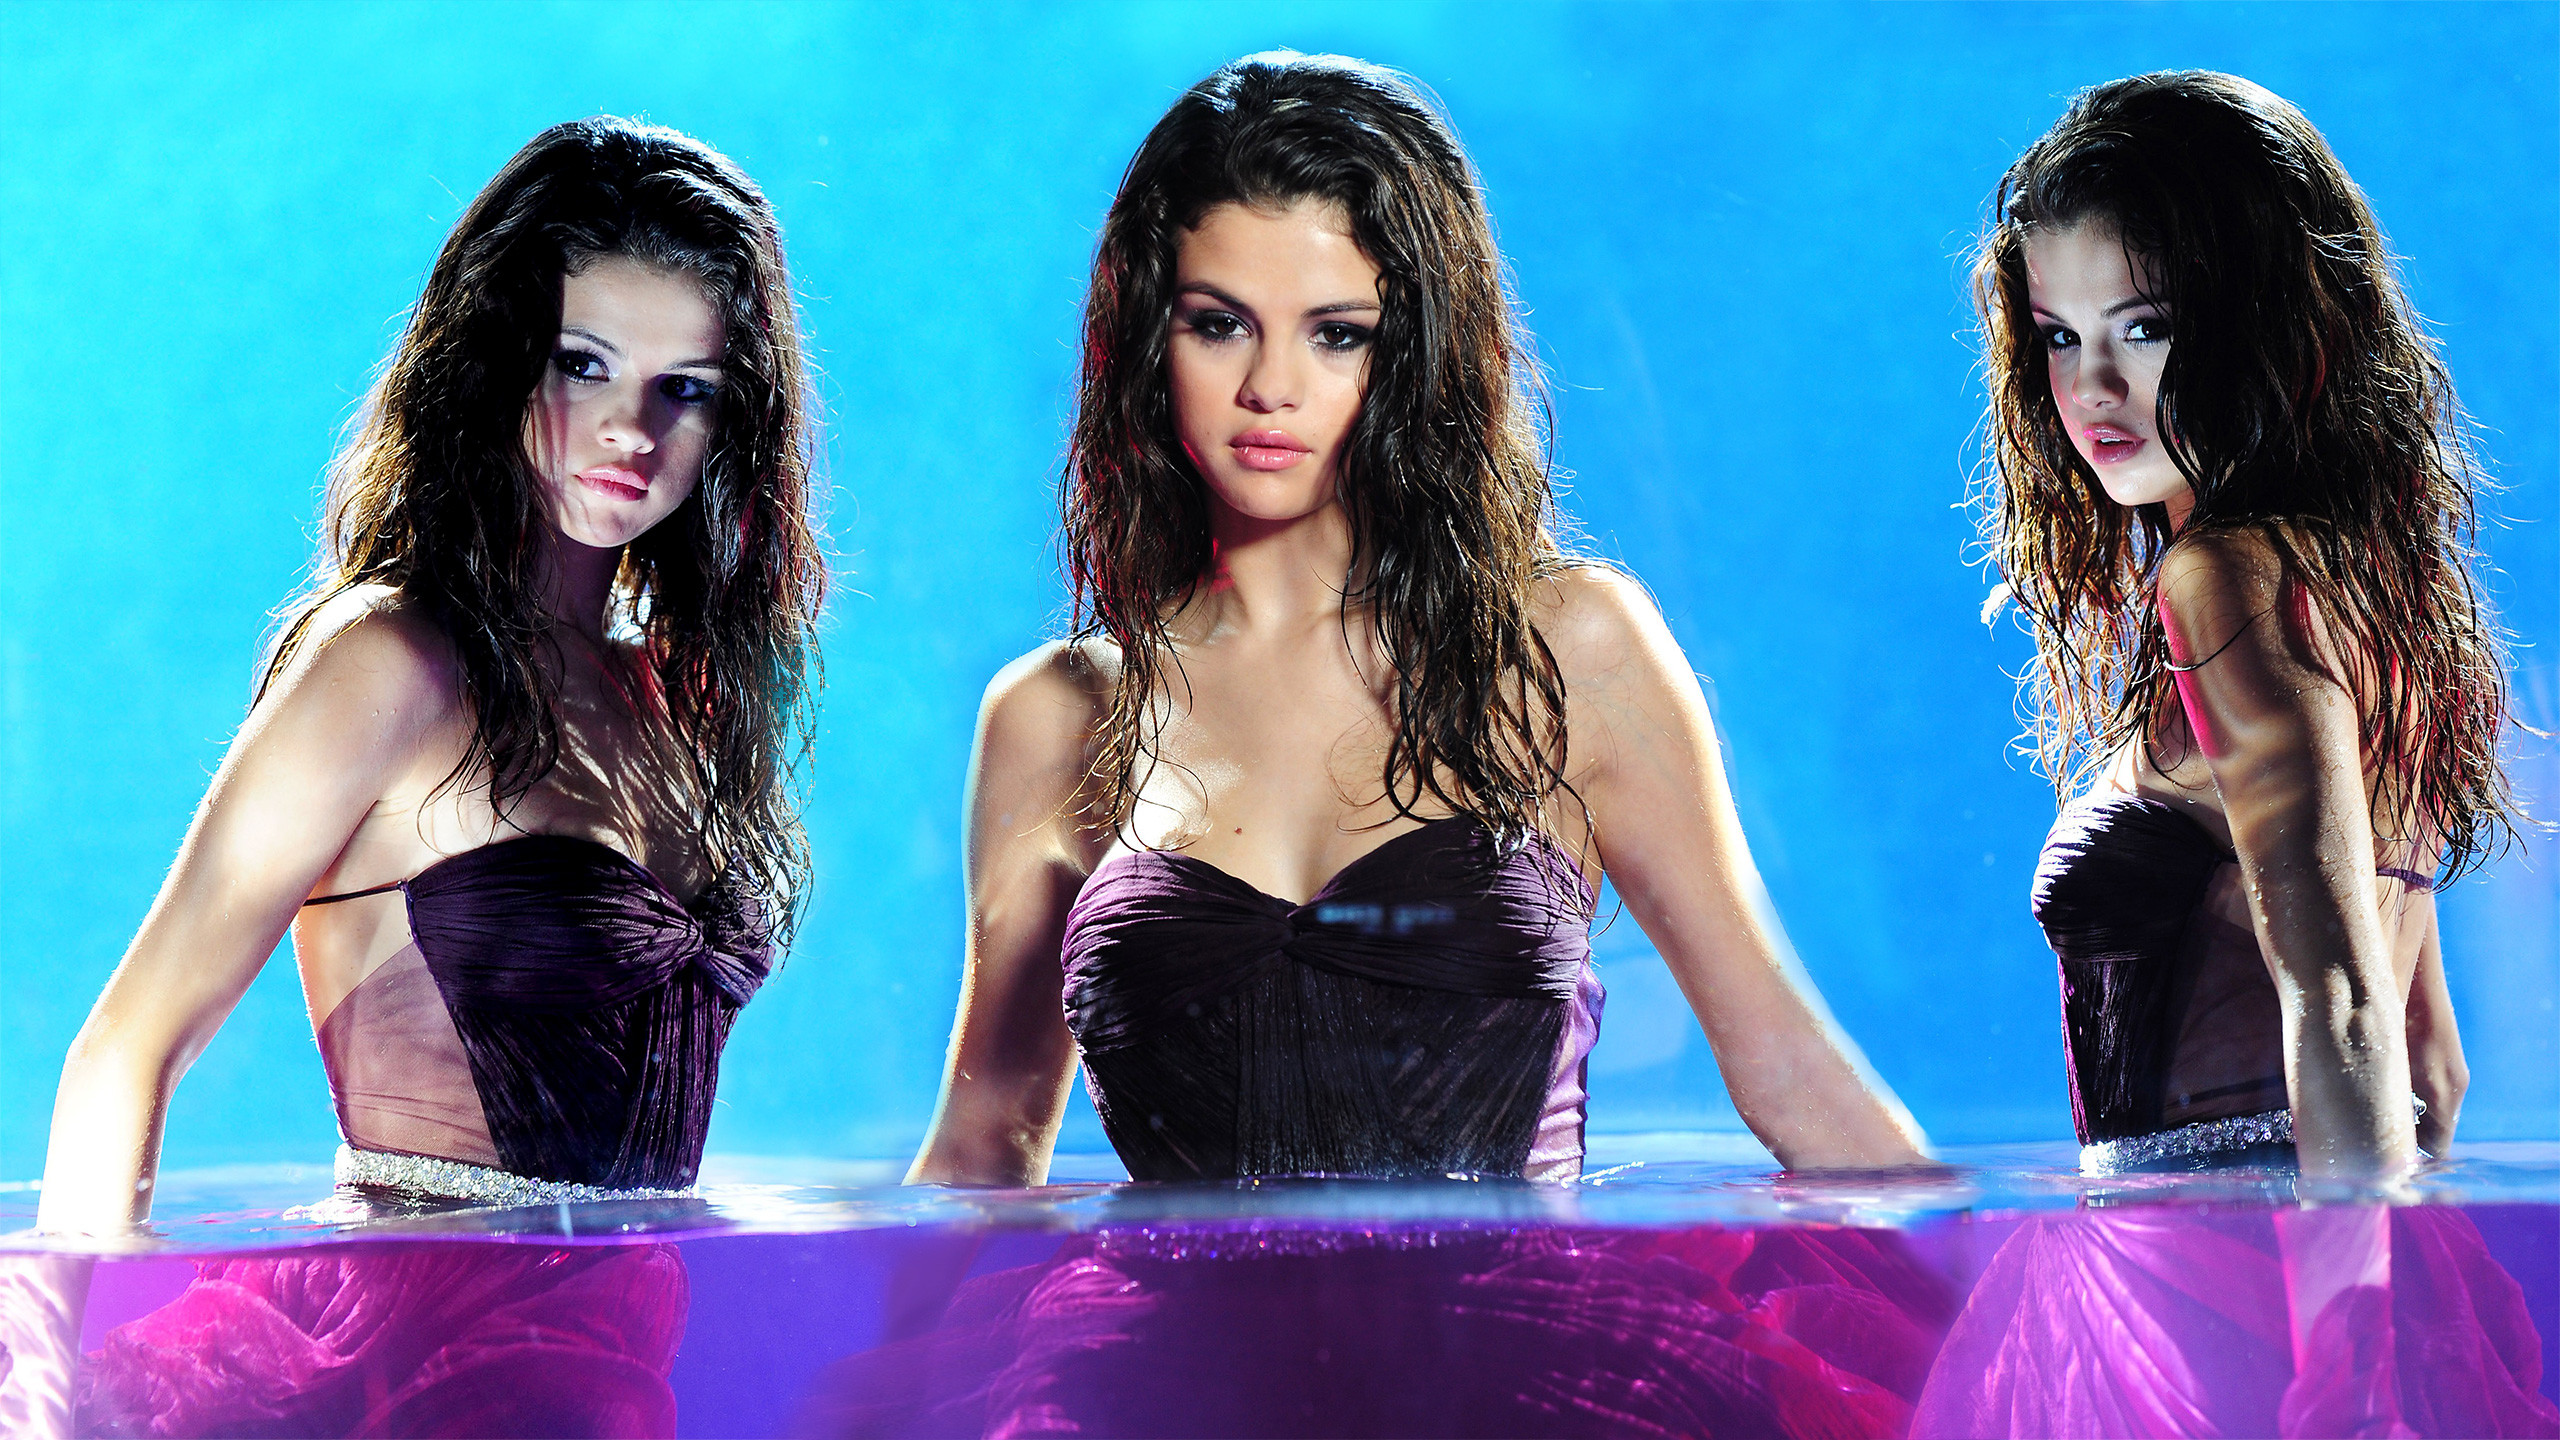 2560x1440 Selena Gomez Wallpapers: 10 Hot -06 - Full Size